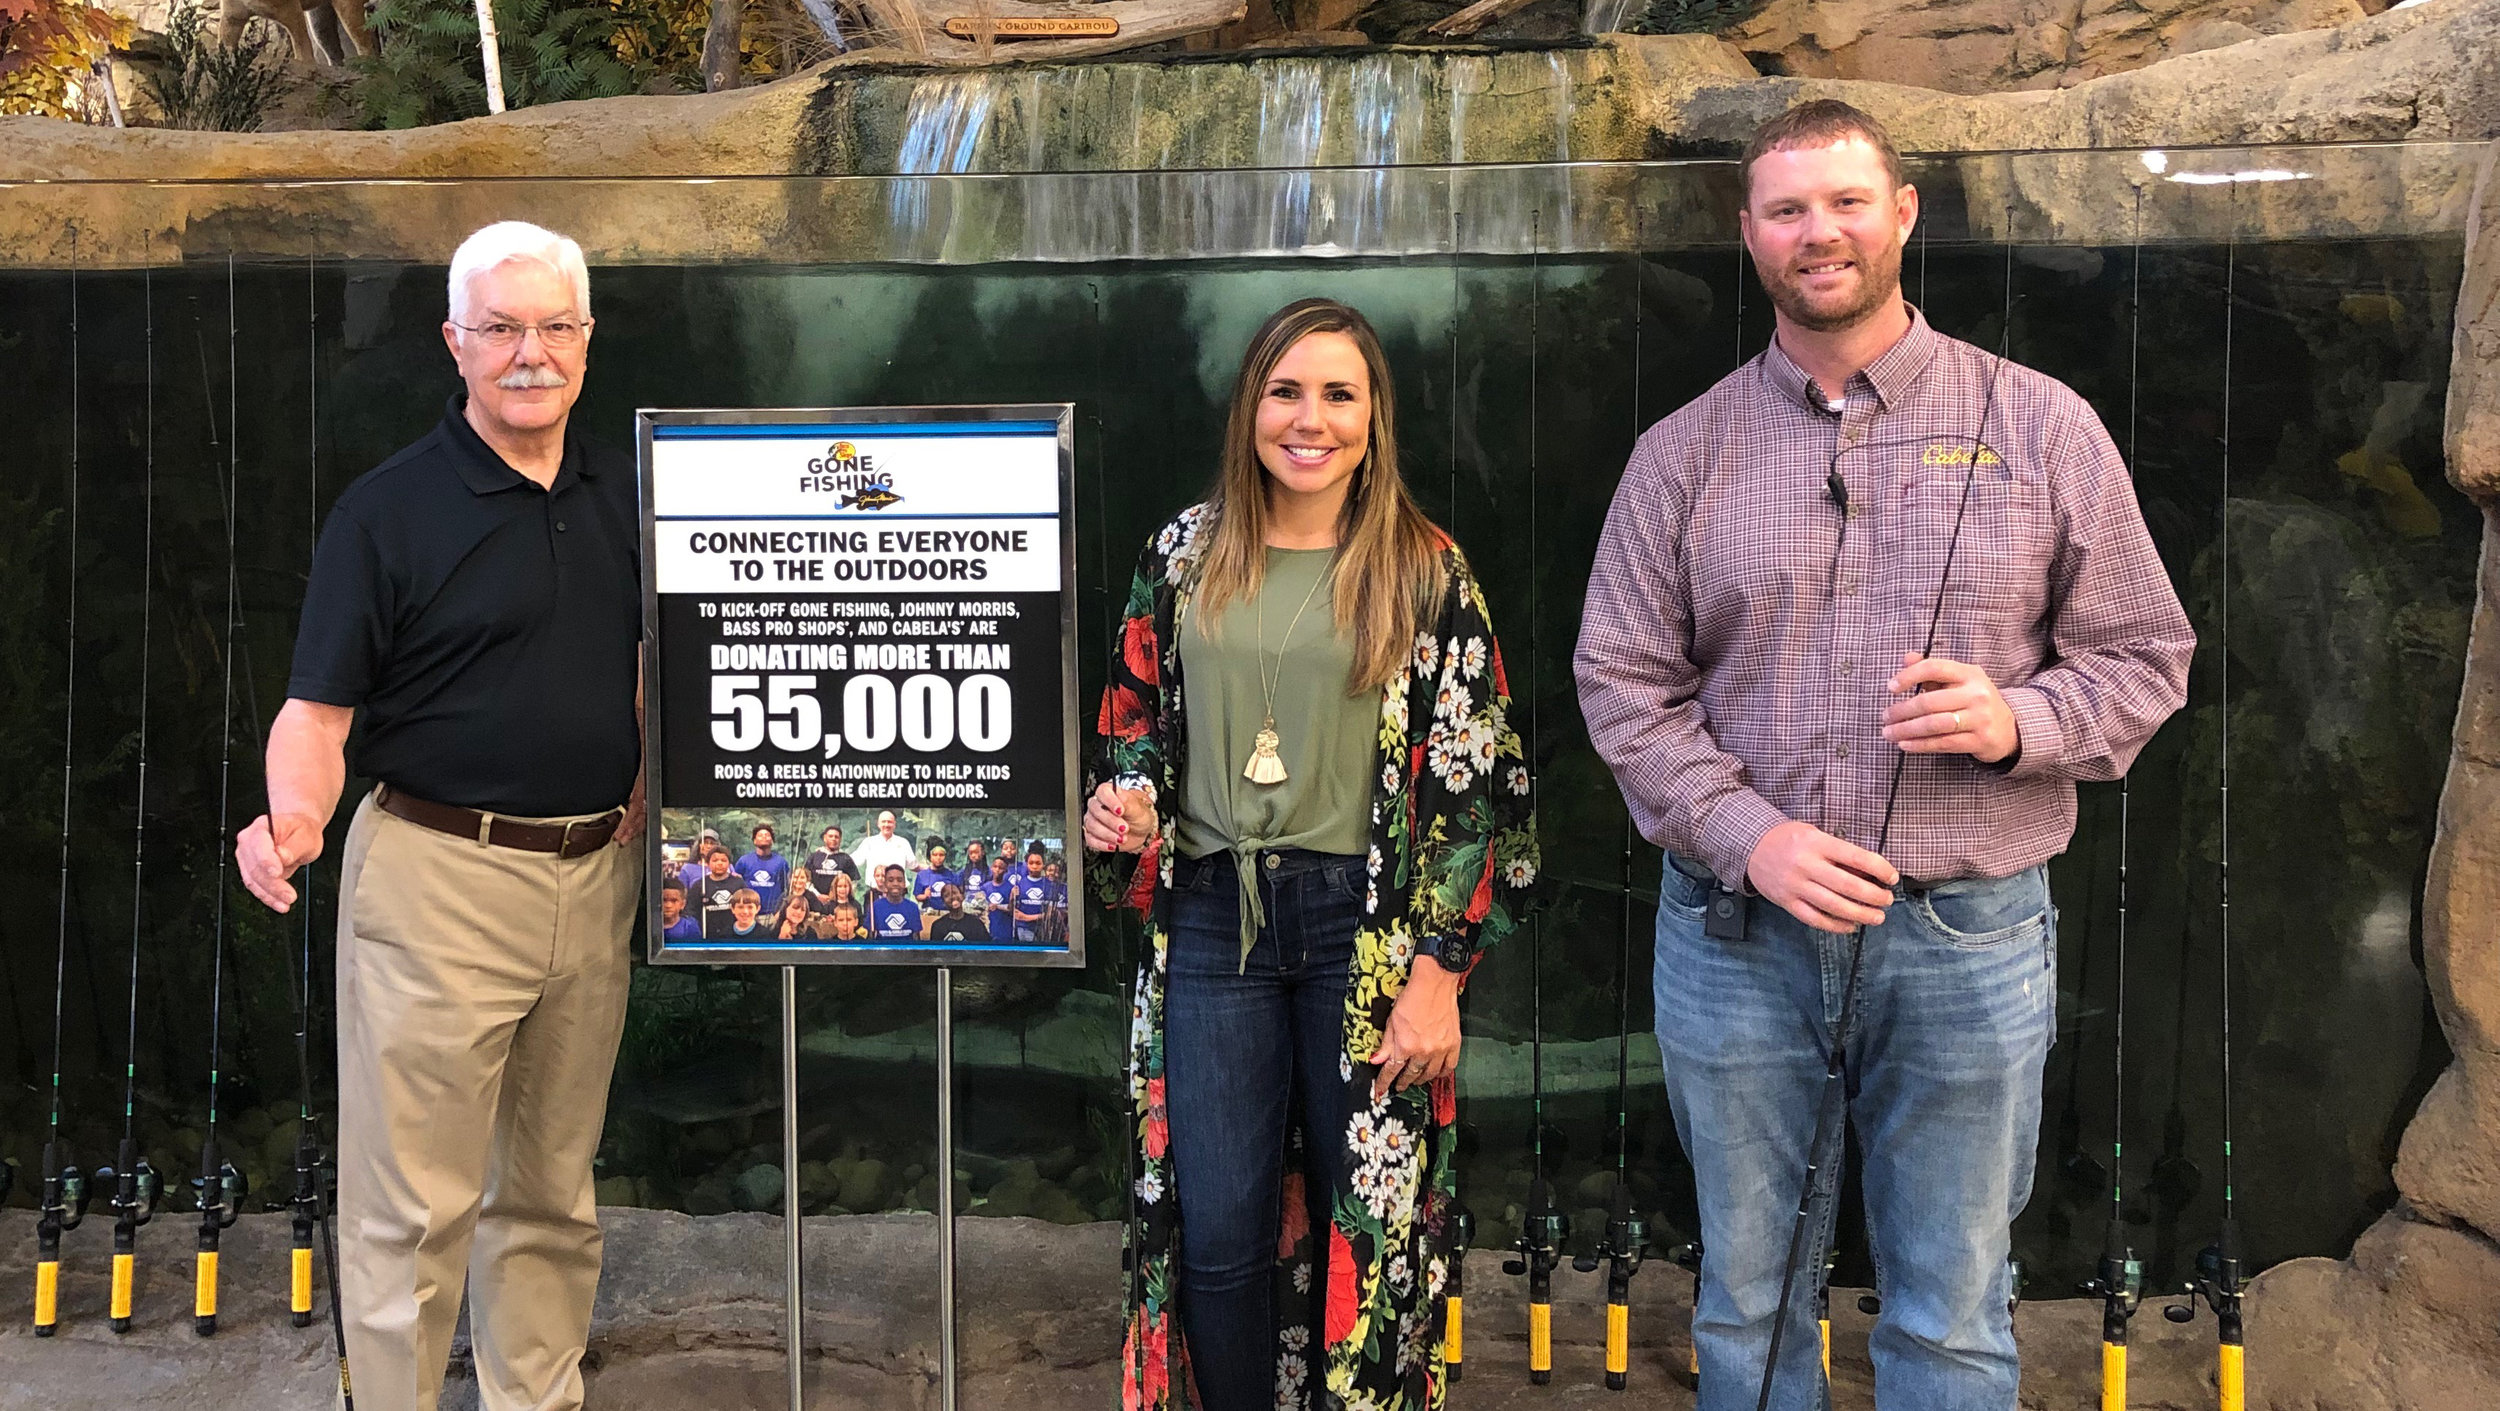 Mike Christensen and Brittany Waldman were privileged to receive rods/reels from Cabela's in support of our efforts to get more kids outdoors, fishing!